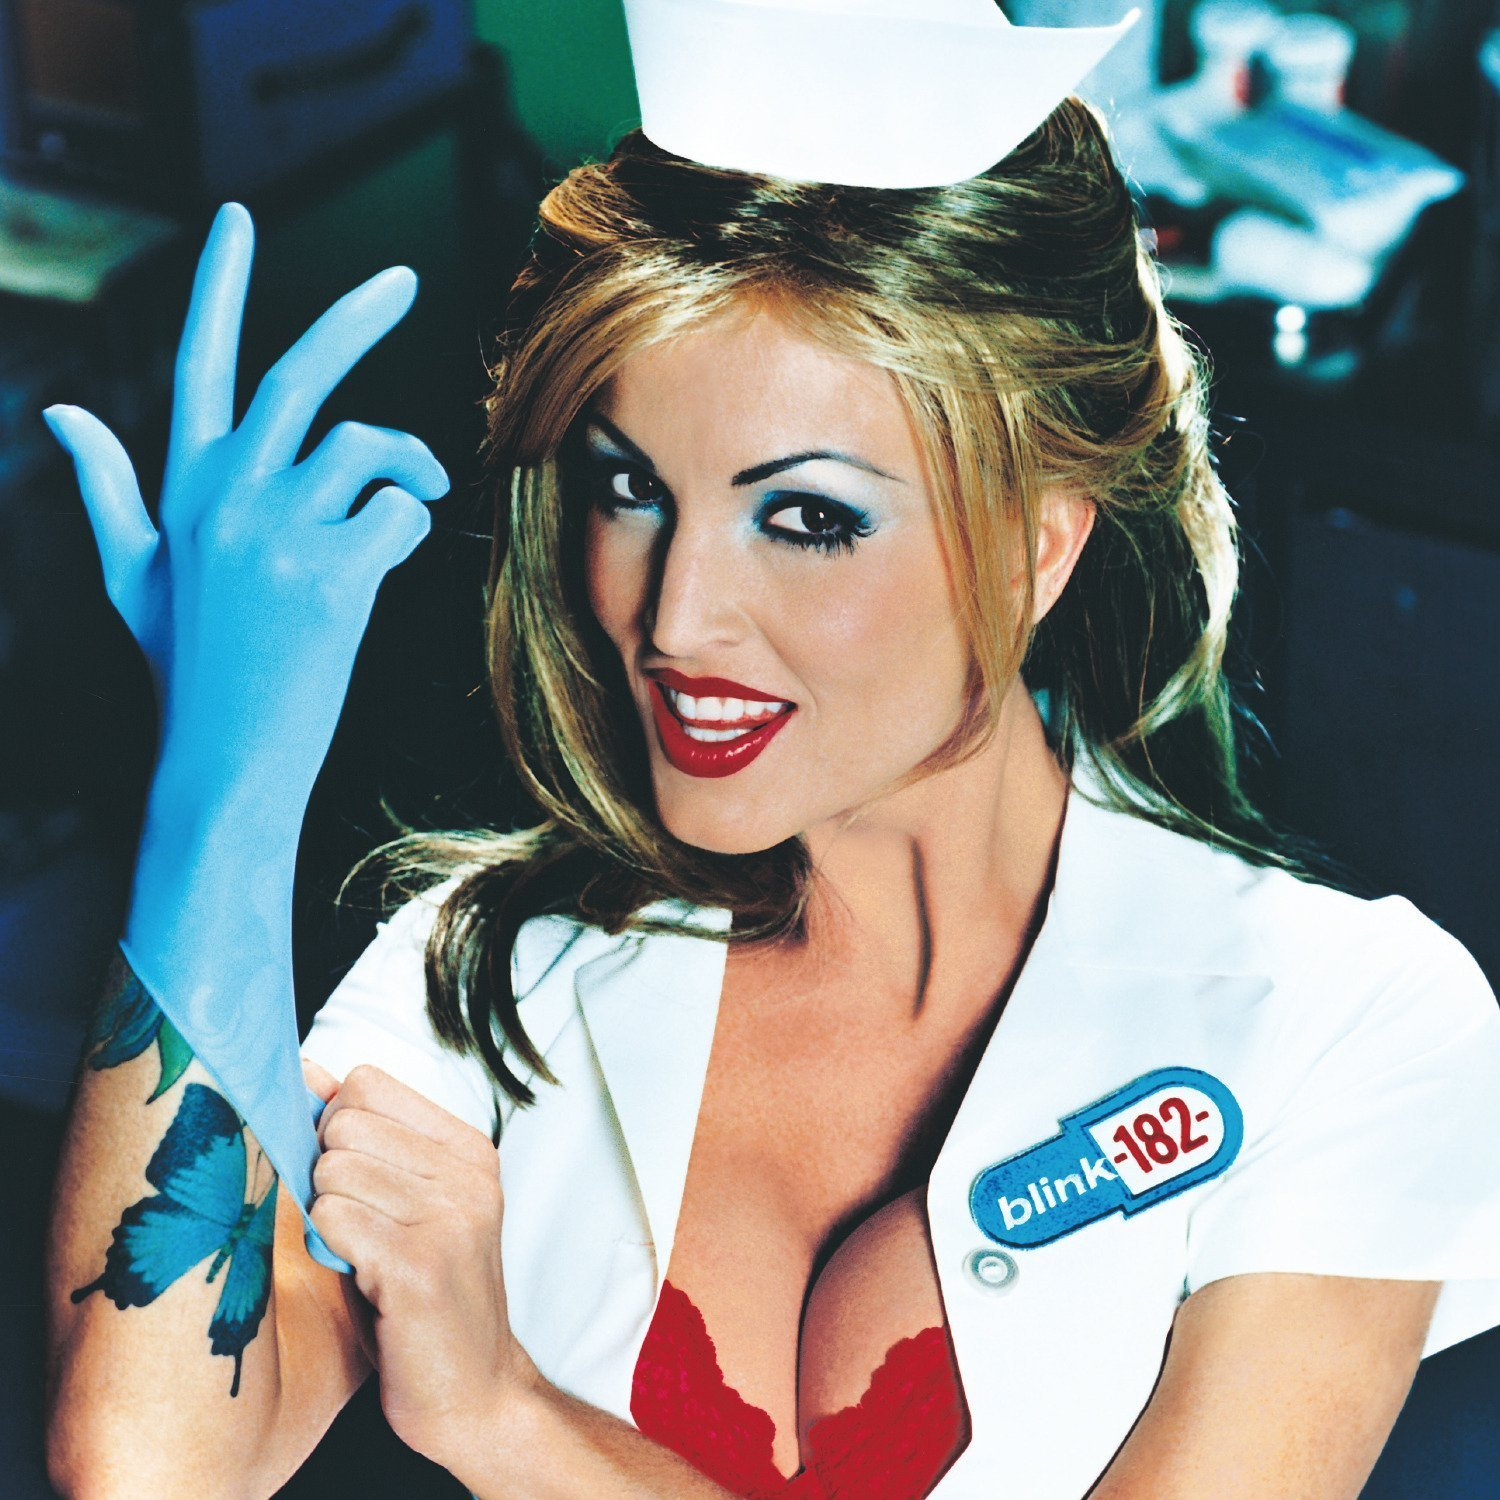 Blink-182 - Enema Of The State [Limited Edition Vinyl]